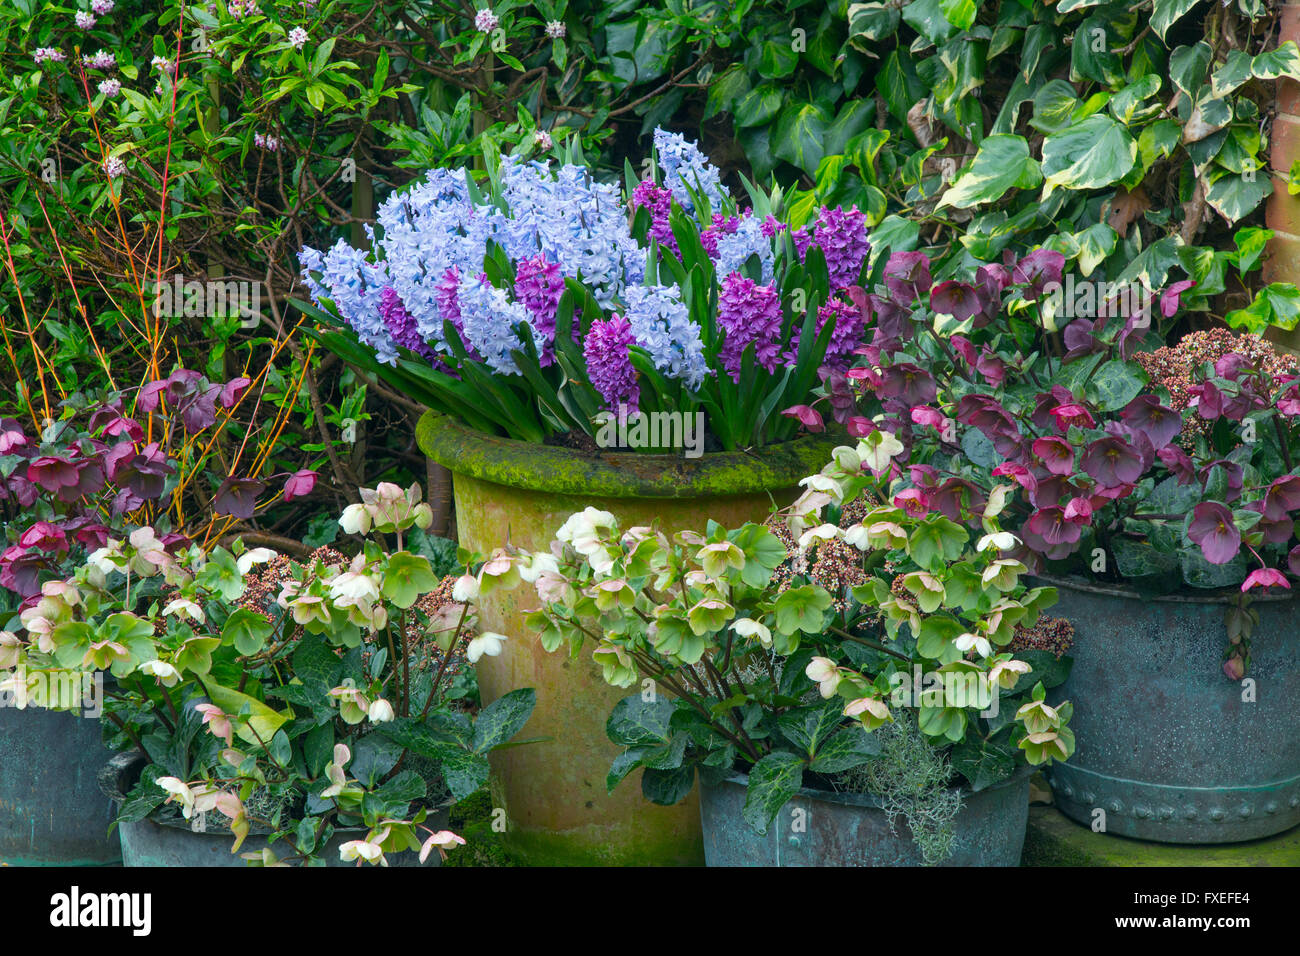 Mixed hyacinths in pots with hellebores against an ivy covered wall stock photo royalty free - Planting hyacinths pots ...